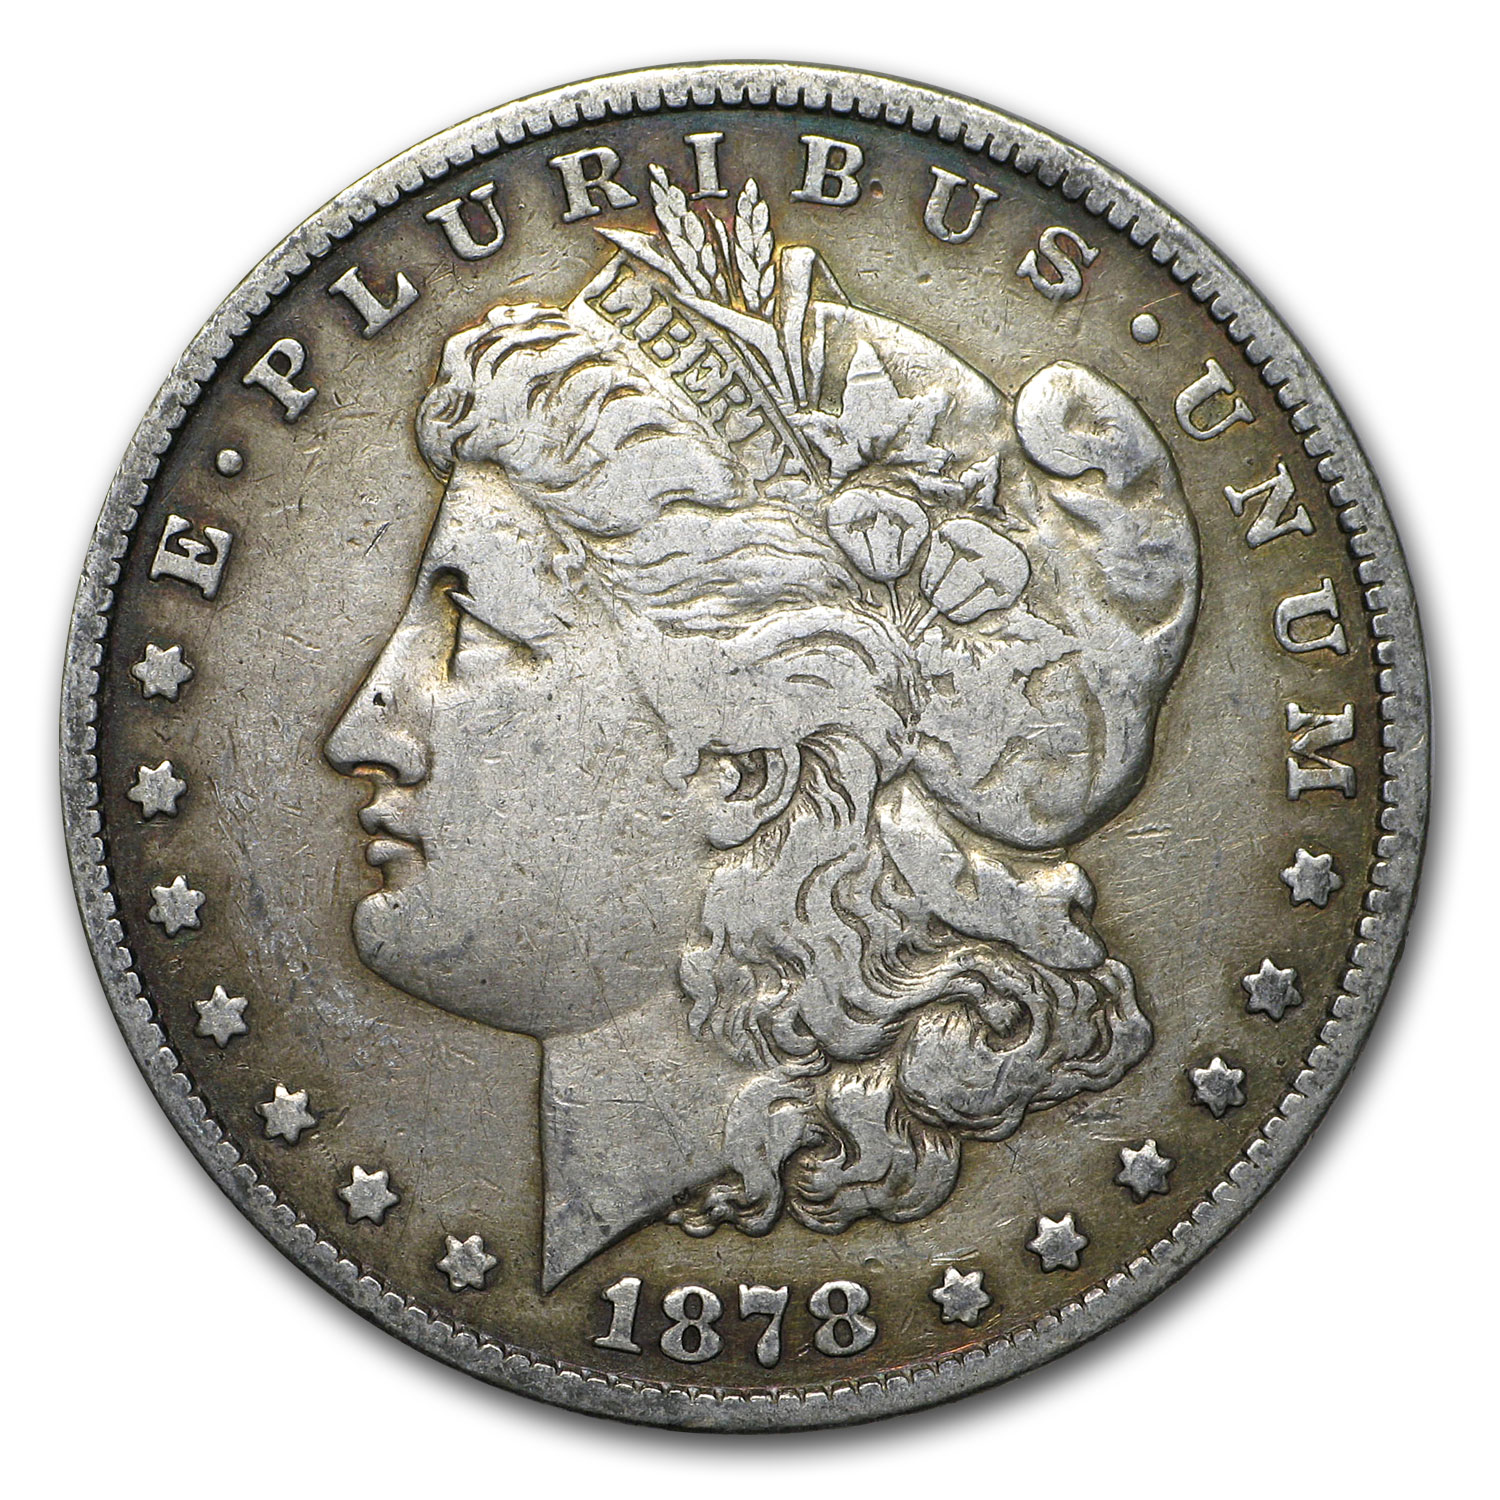 1878 Morgan Silver Dollar 7 Tailfeathers Rev of 78 VG/XF